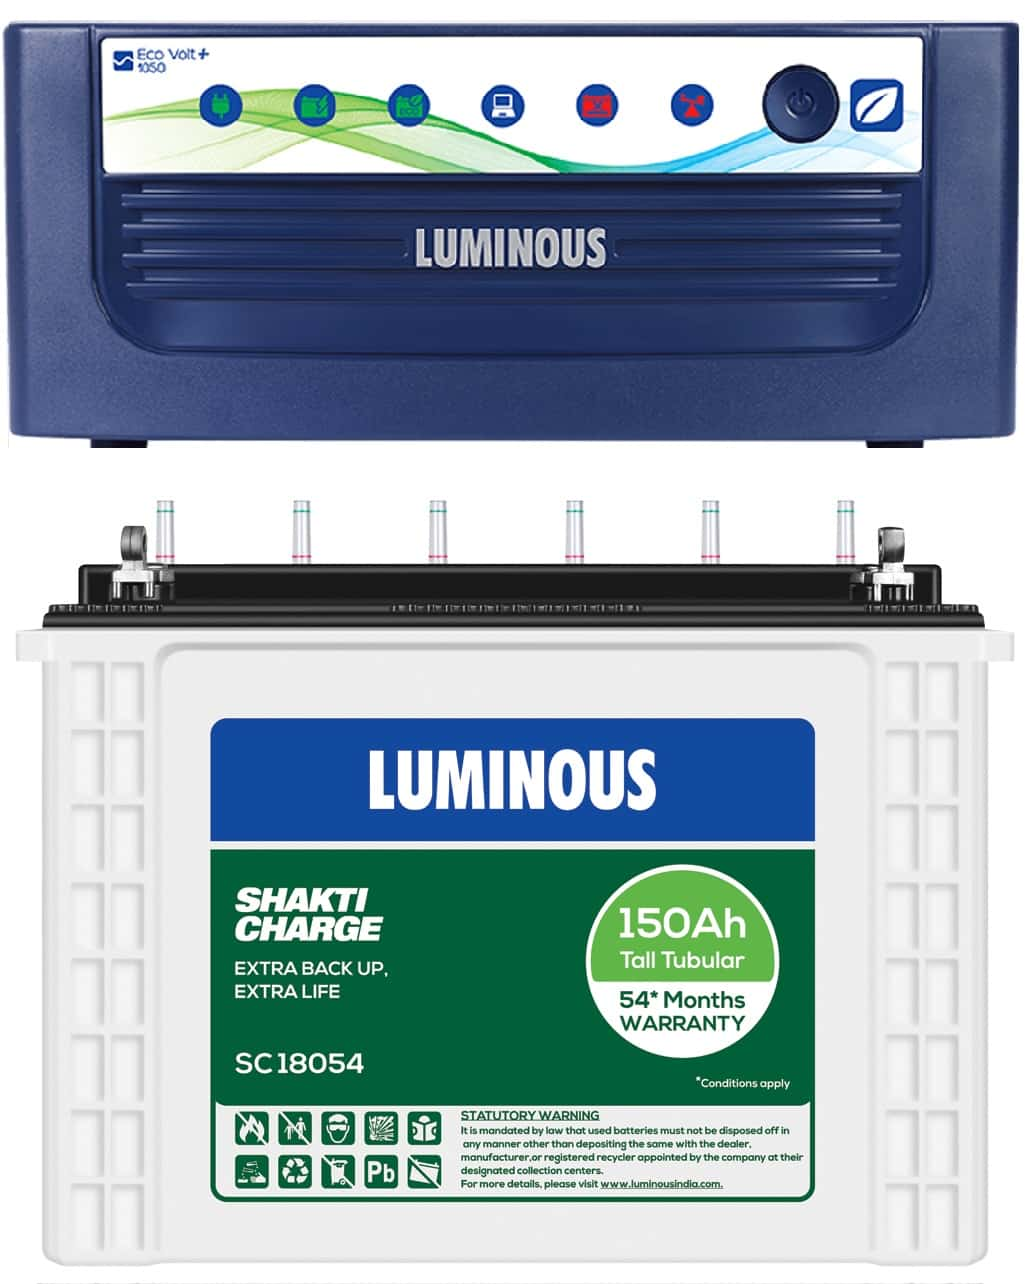 LUMINOUS 1050+ ECO VOLT + SC18054 150AH